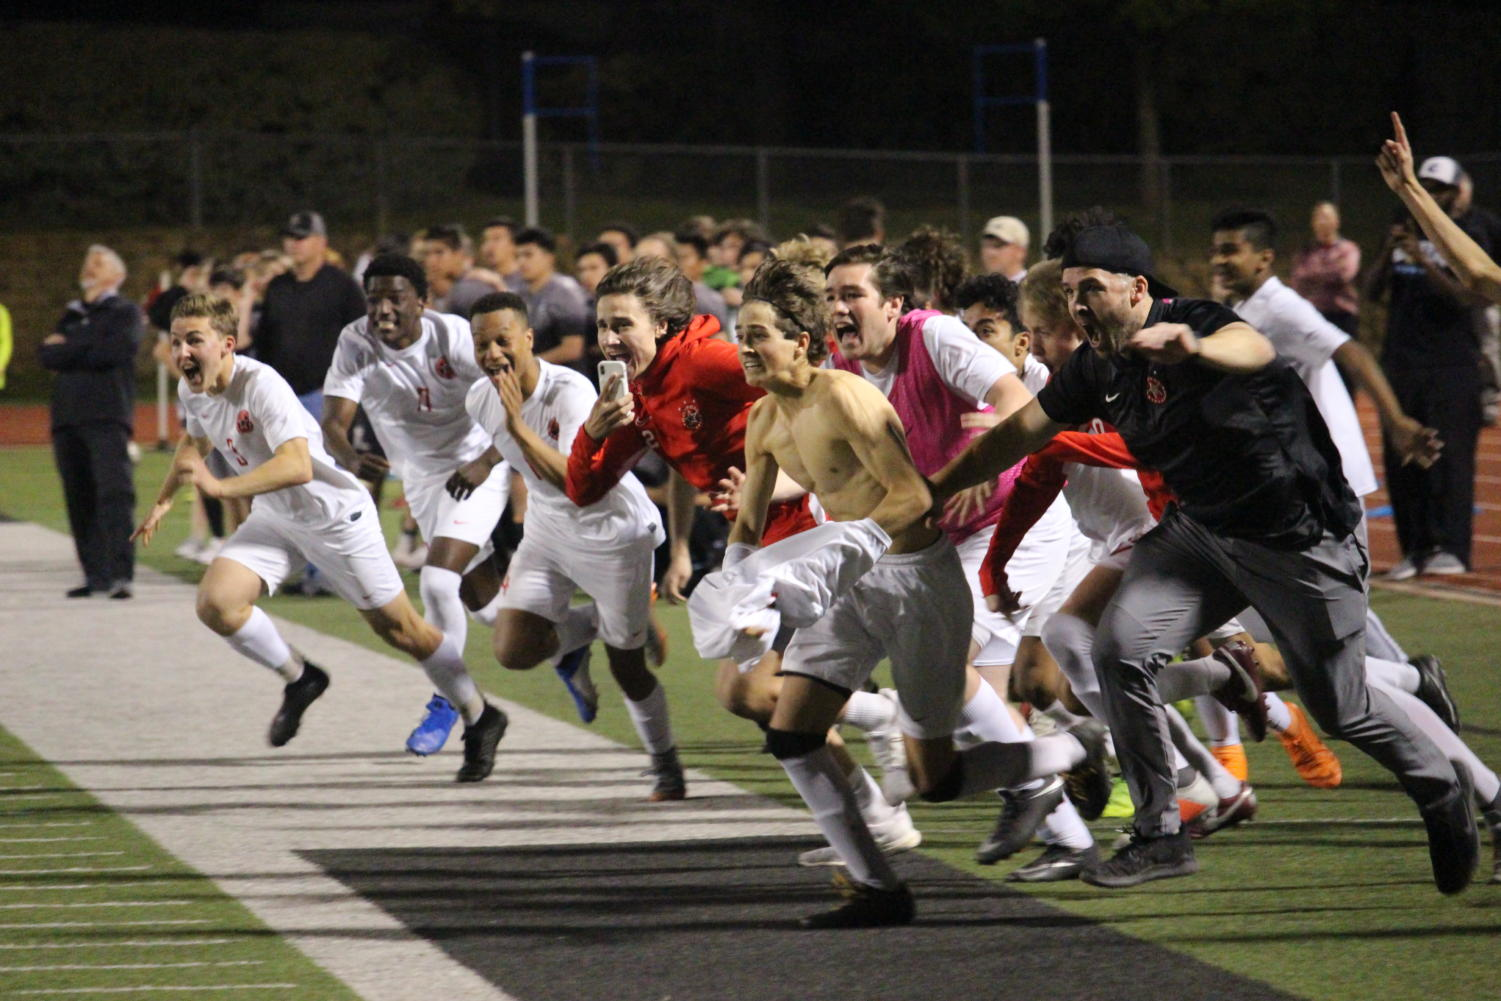 The Coppell boys soccer team celebrates after senior goalie Austin Simigian blocks Denton Guyer's Penalty kick to steal the victory for the Cowboys at Falcon Stadium in Lake Dallas. After a scoreless regulation and two overtime periods, Coppell won,  0-0 (4-3), in the Class 6A Region I bi-district match